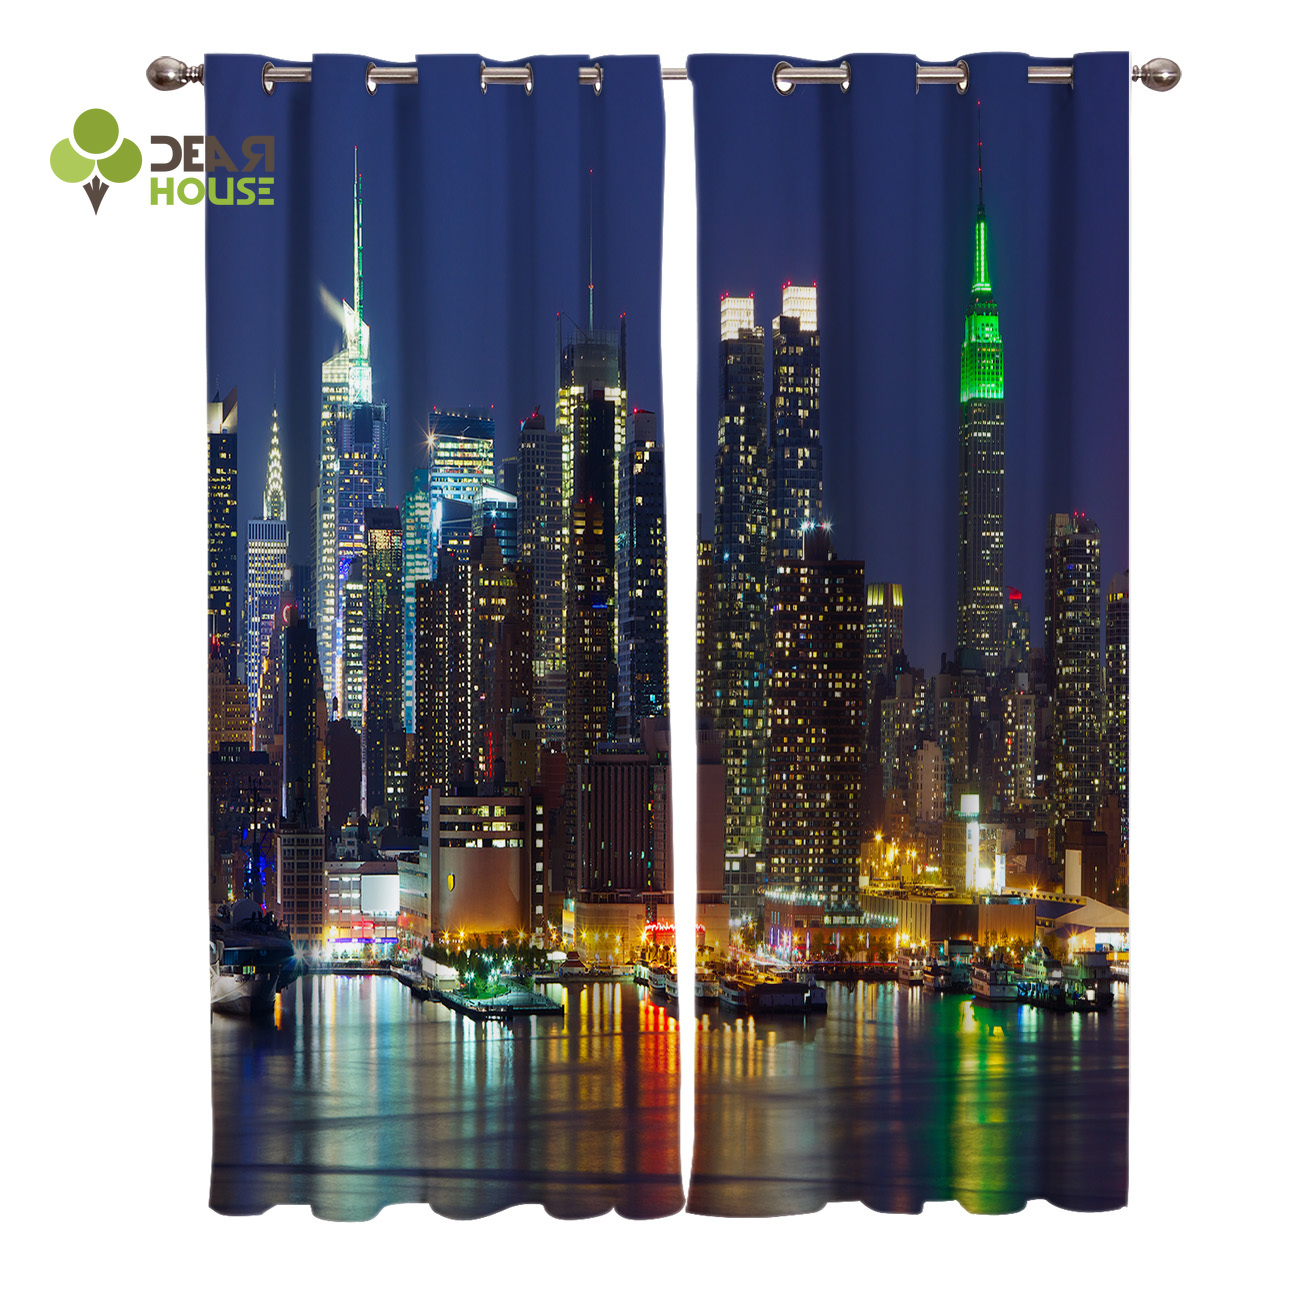 Dear House Curtains Urban Night Landscape Business District Waterfront Skyscraper Window Living Room Decor image